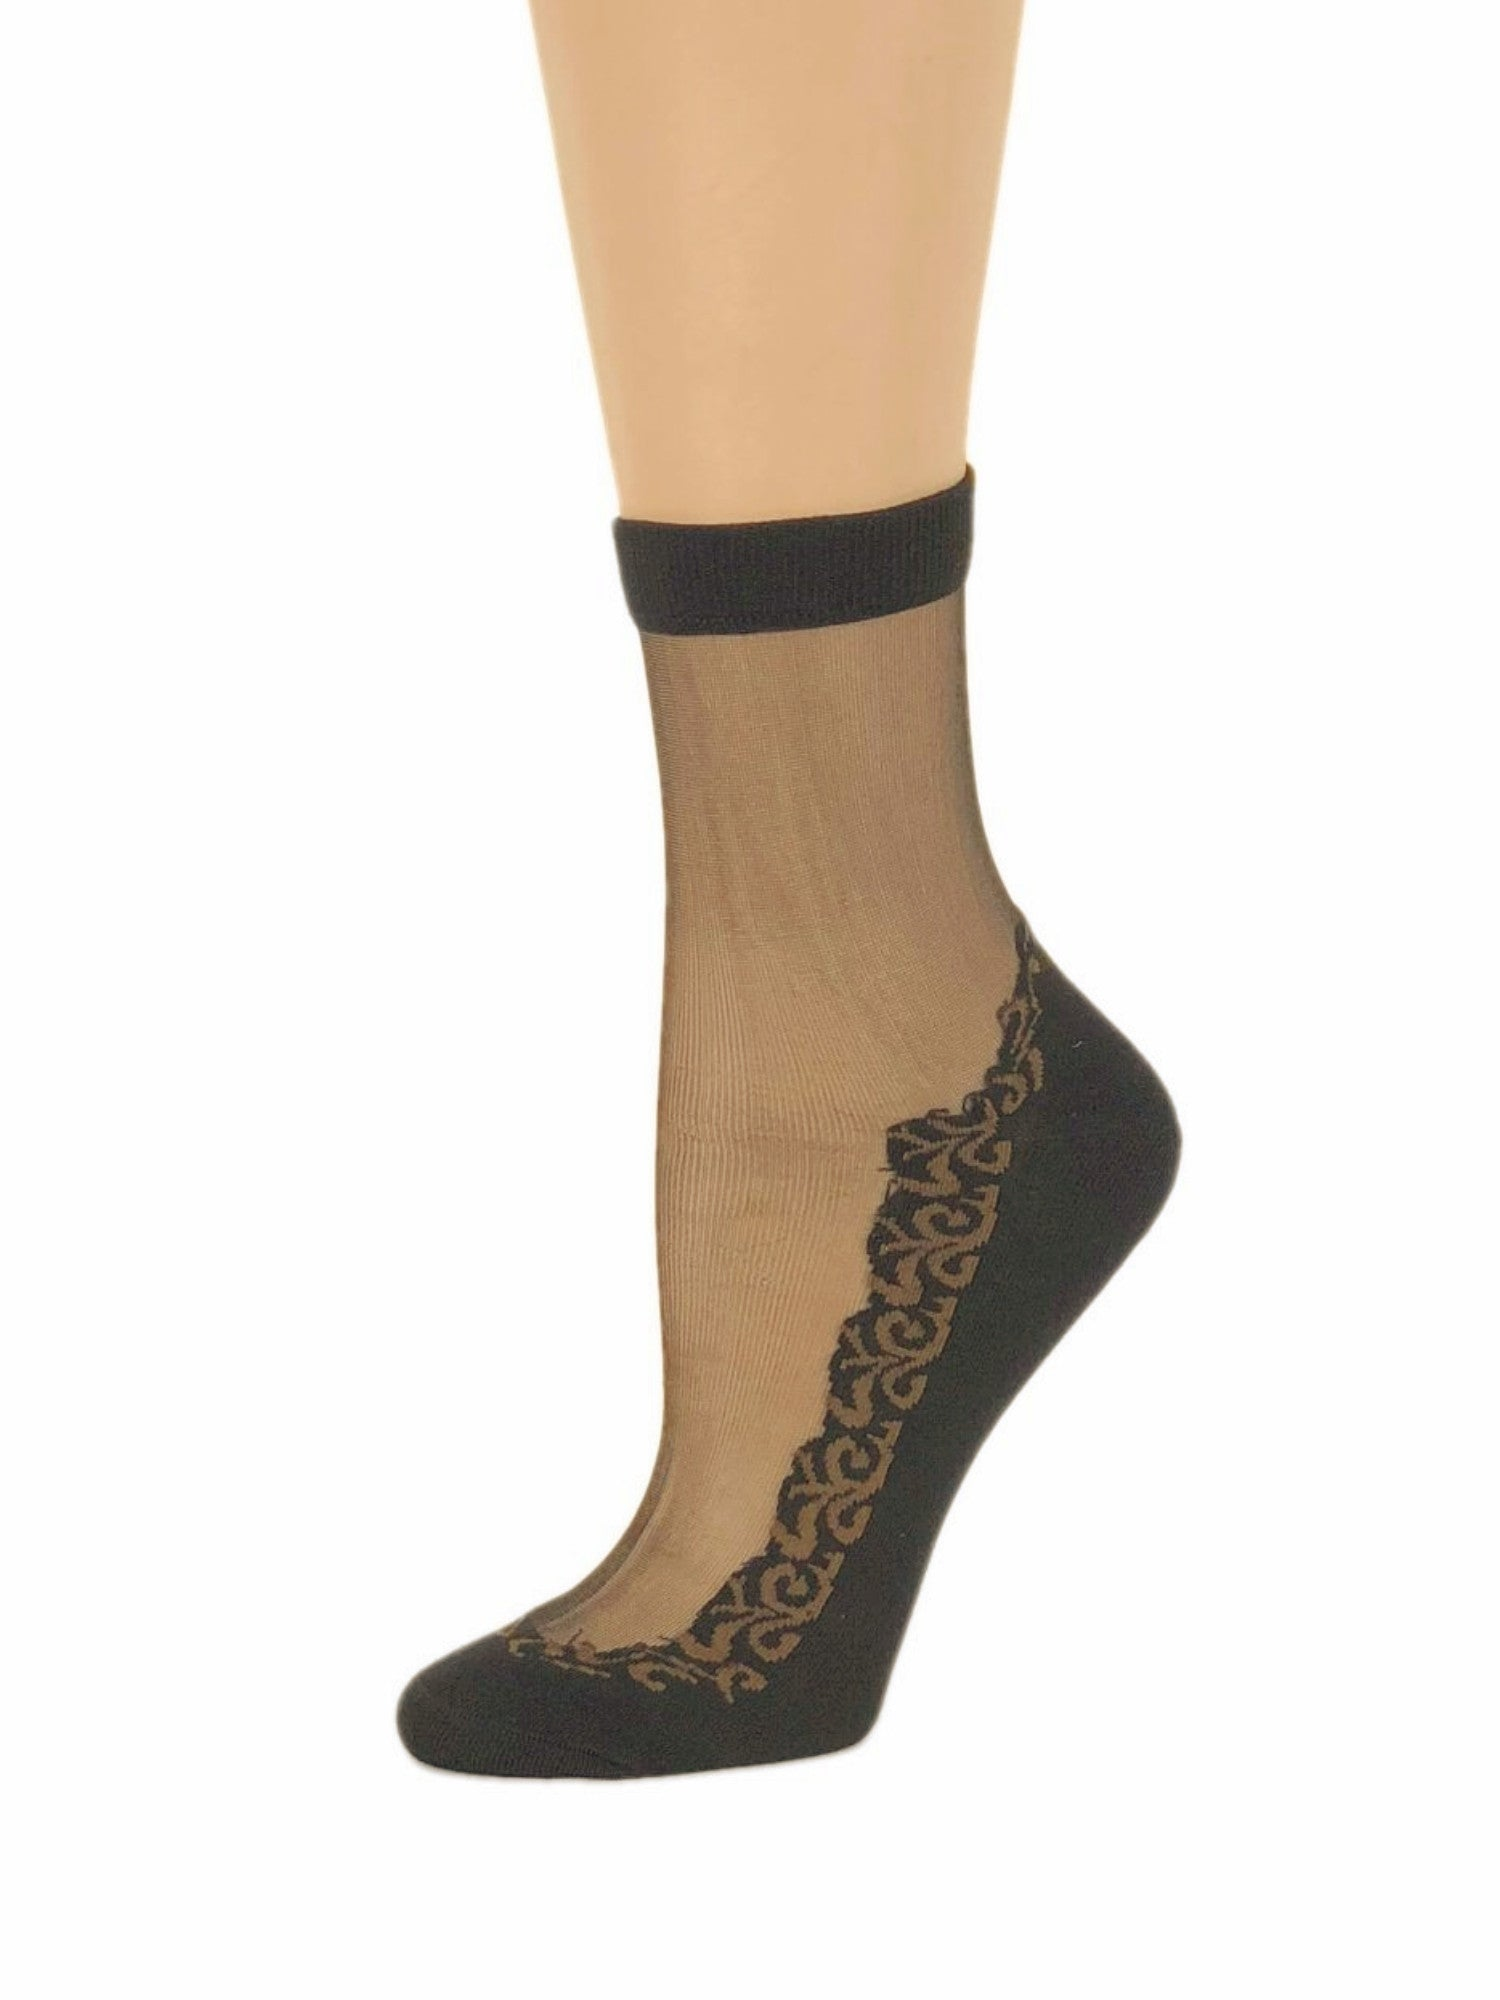 Sequence Brown Leaf Sheer Socks - Global Trendz Fashion®